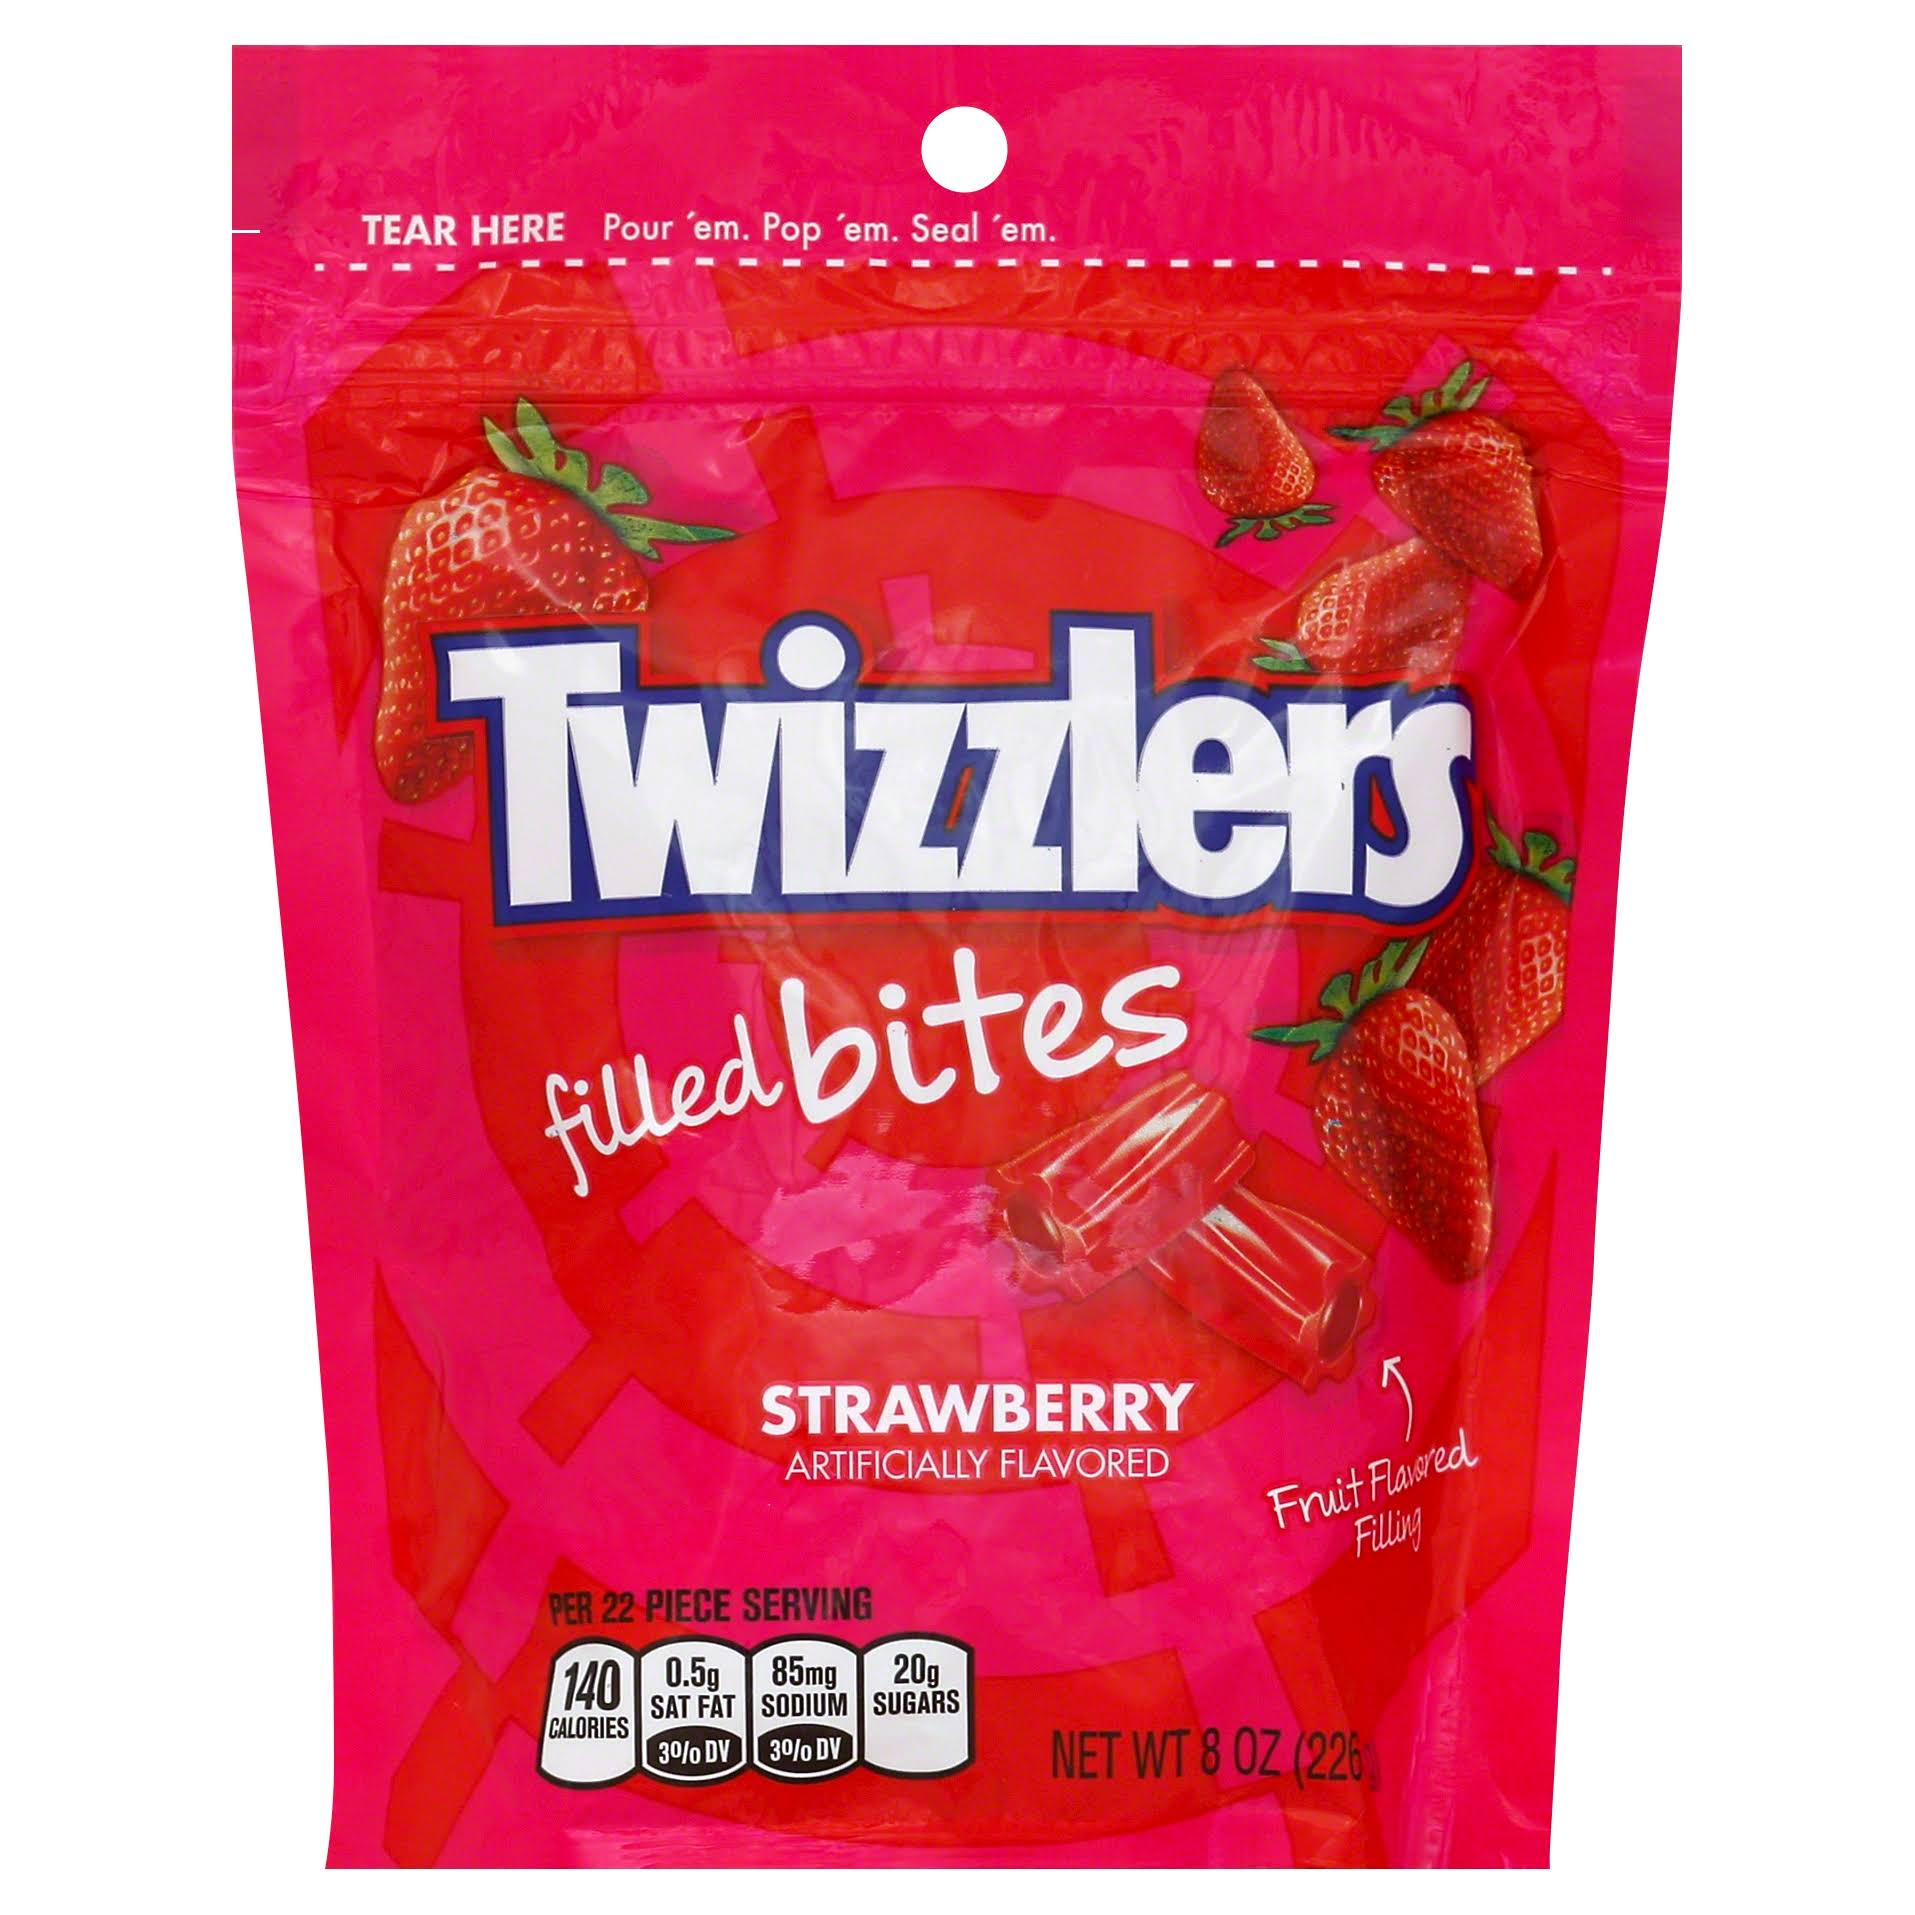 Twizzlers Filled Bites Licorice Candy - Strawberry